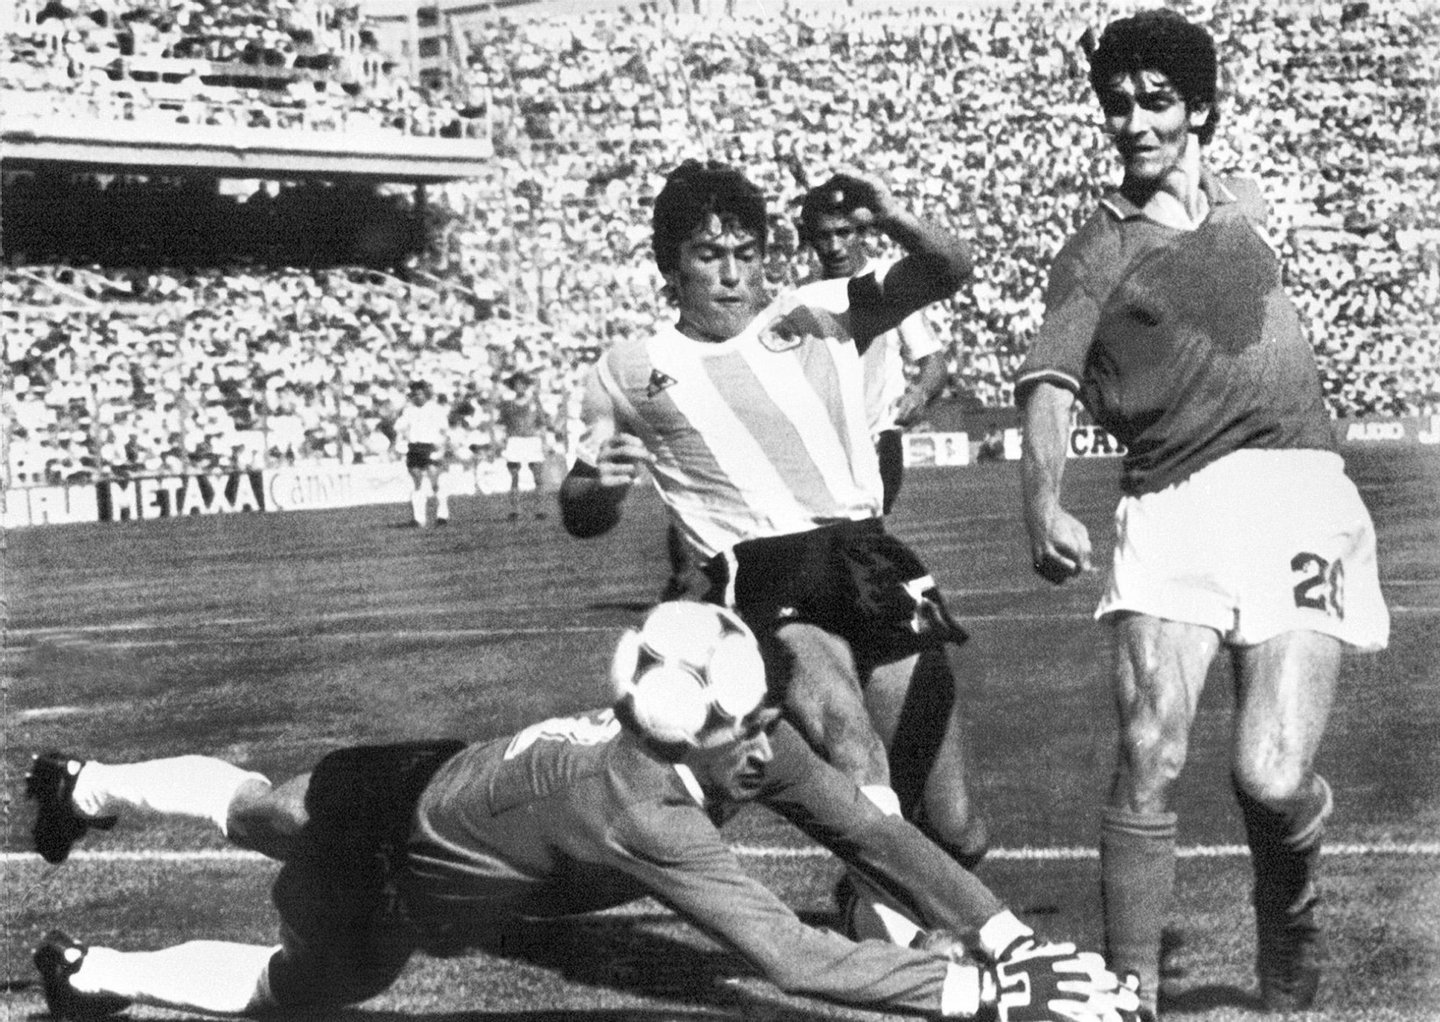 BARCELONA, SPAIN - JUNE 29: Argentinian goalkeeper Ubaldo Fillol and captain Daniel Passarella prevent Italian striker Paolo Rossi from scoring 29 June 1982 in Barcelona during the World Cup second round soccer match between Italy and Argentina. Italy beat Argentina 2-1 despite a goal by Passarella. AFP PHOTO (Photo credit should read STAFF/AFP/Getty Images)